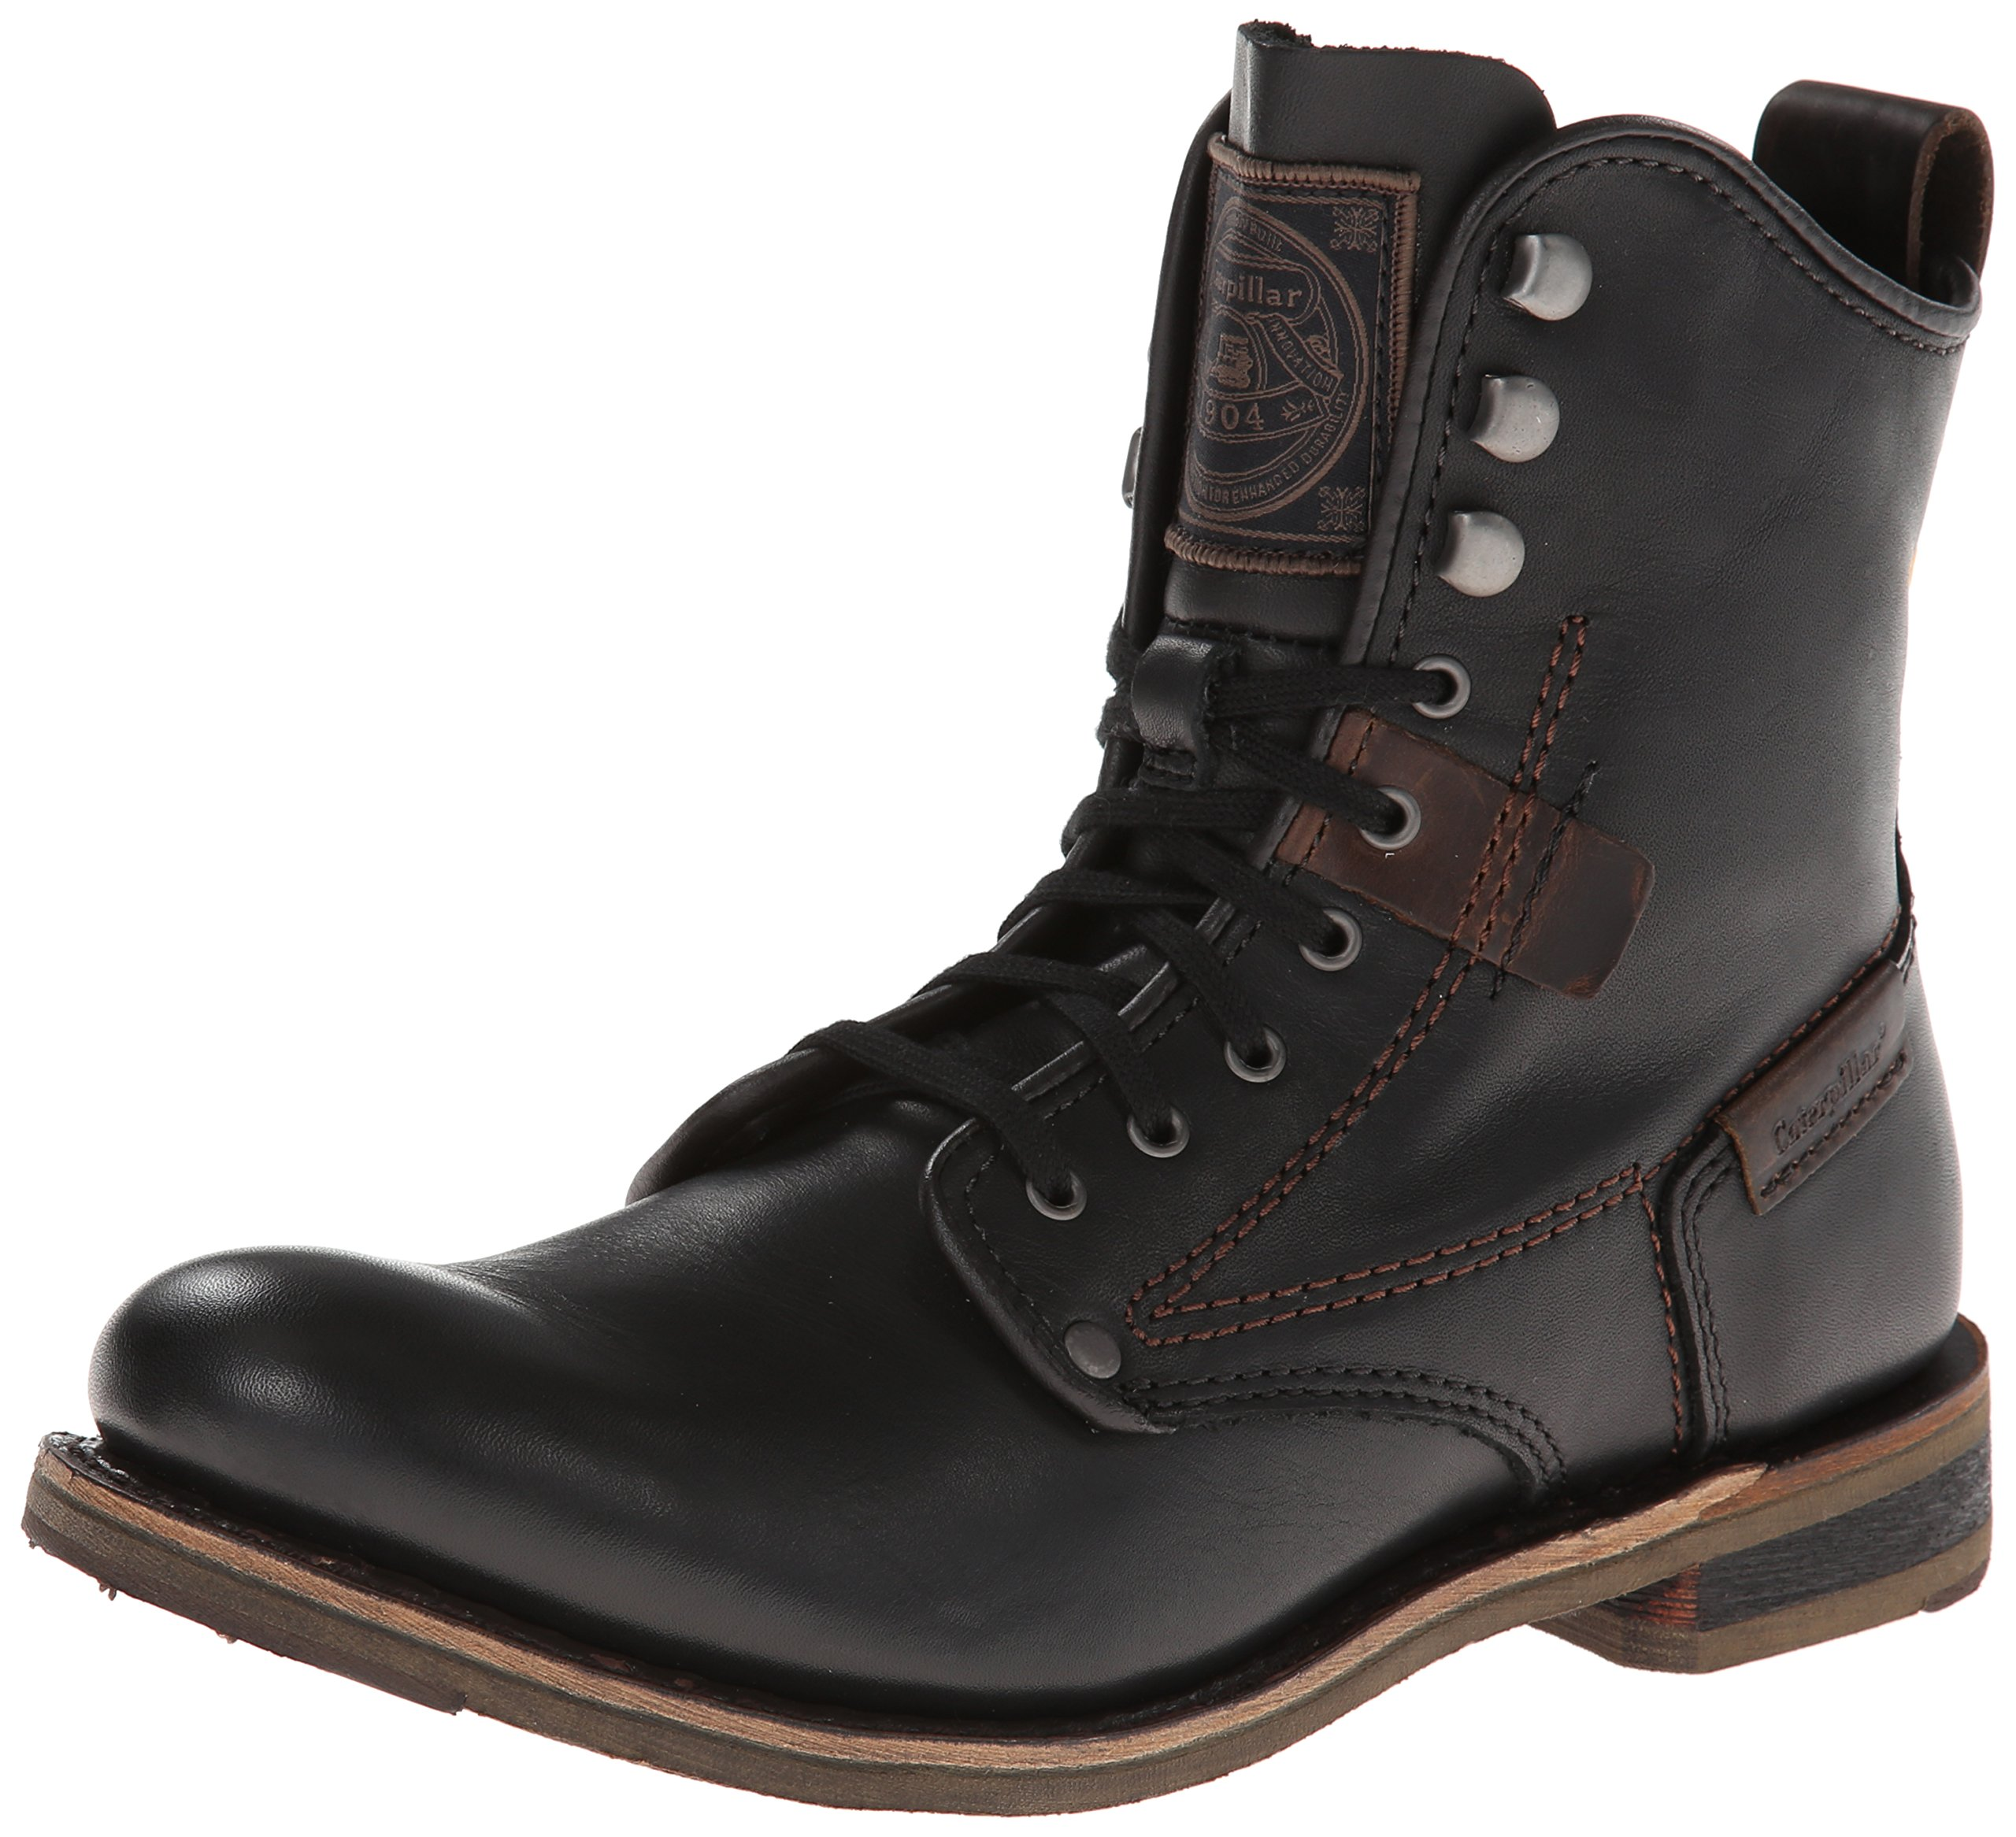 Caterpillar Men's Orson P715253 Boot,Black,9 M US